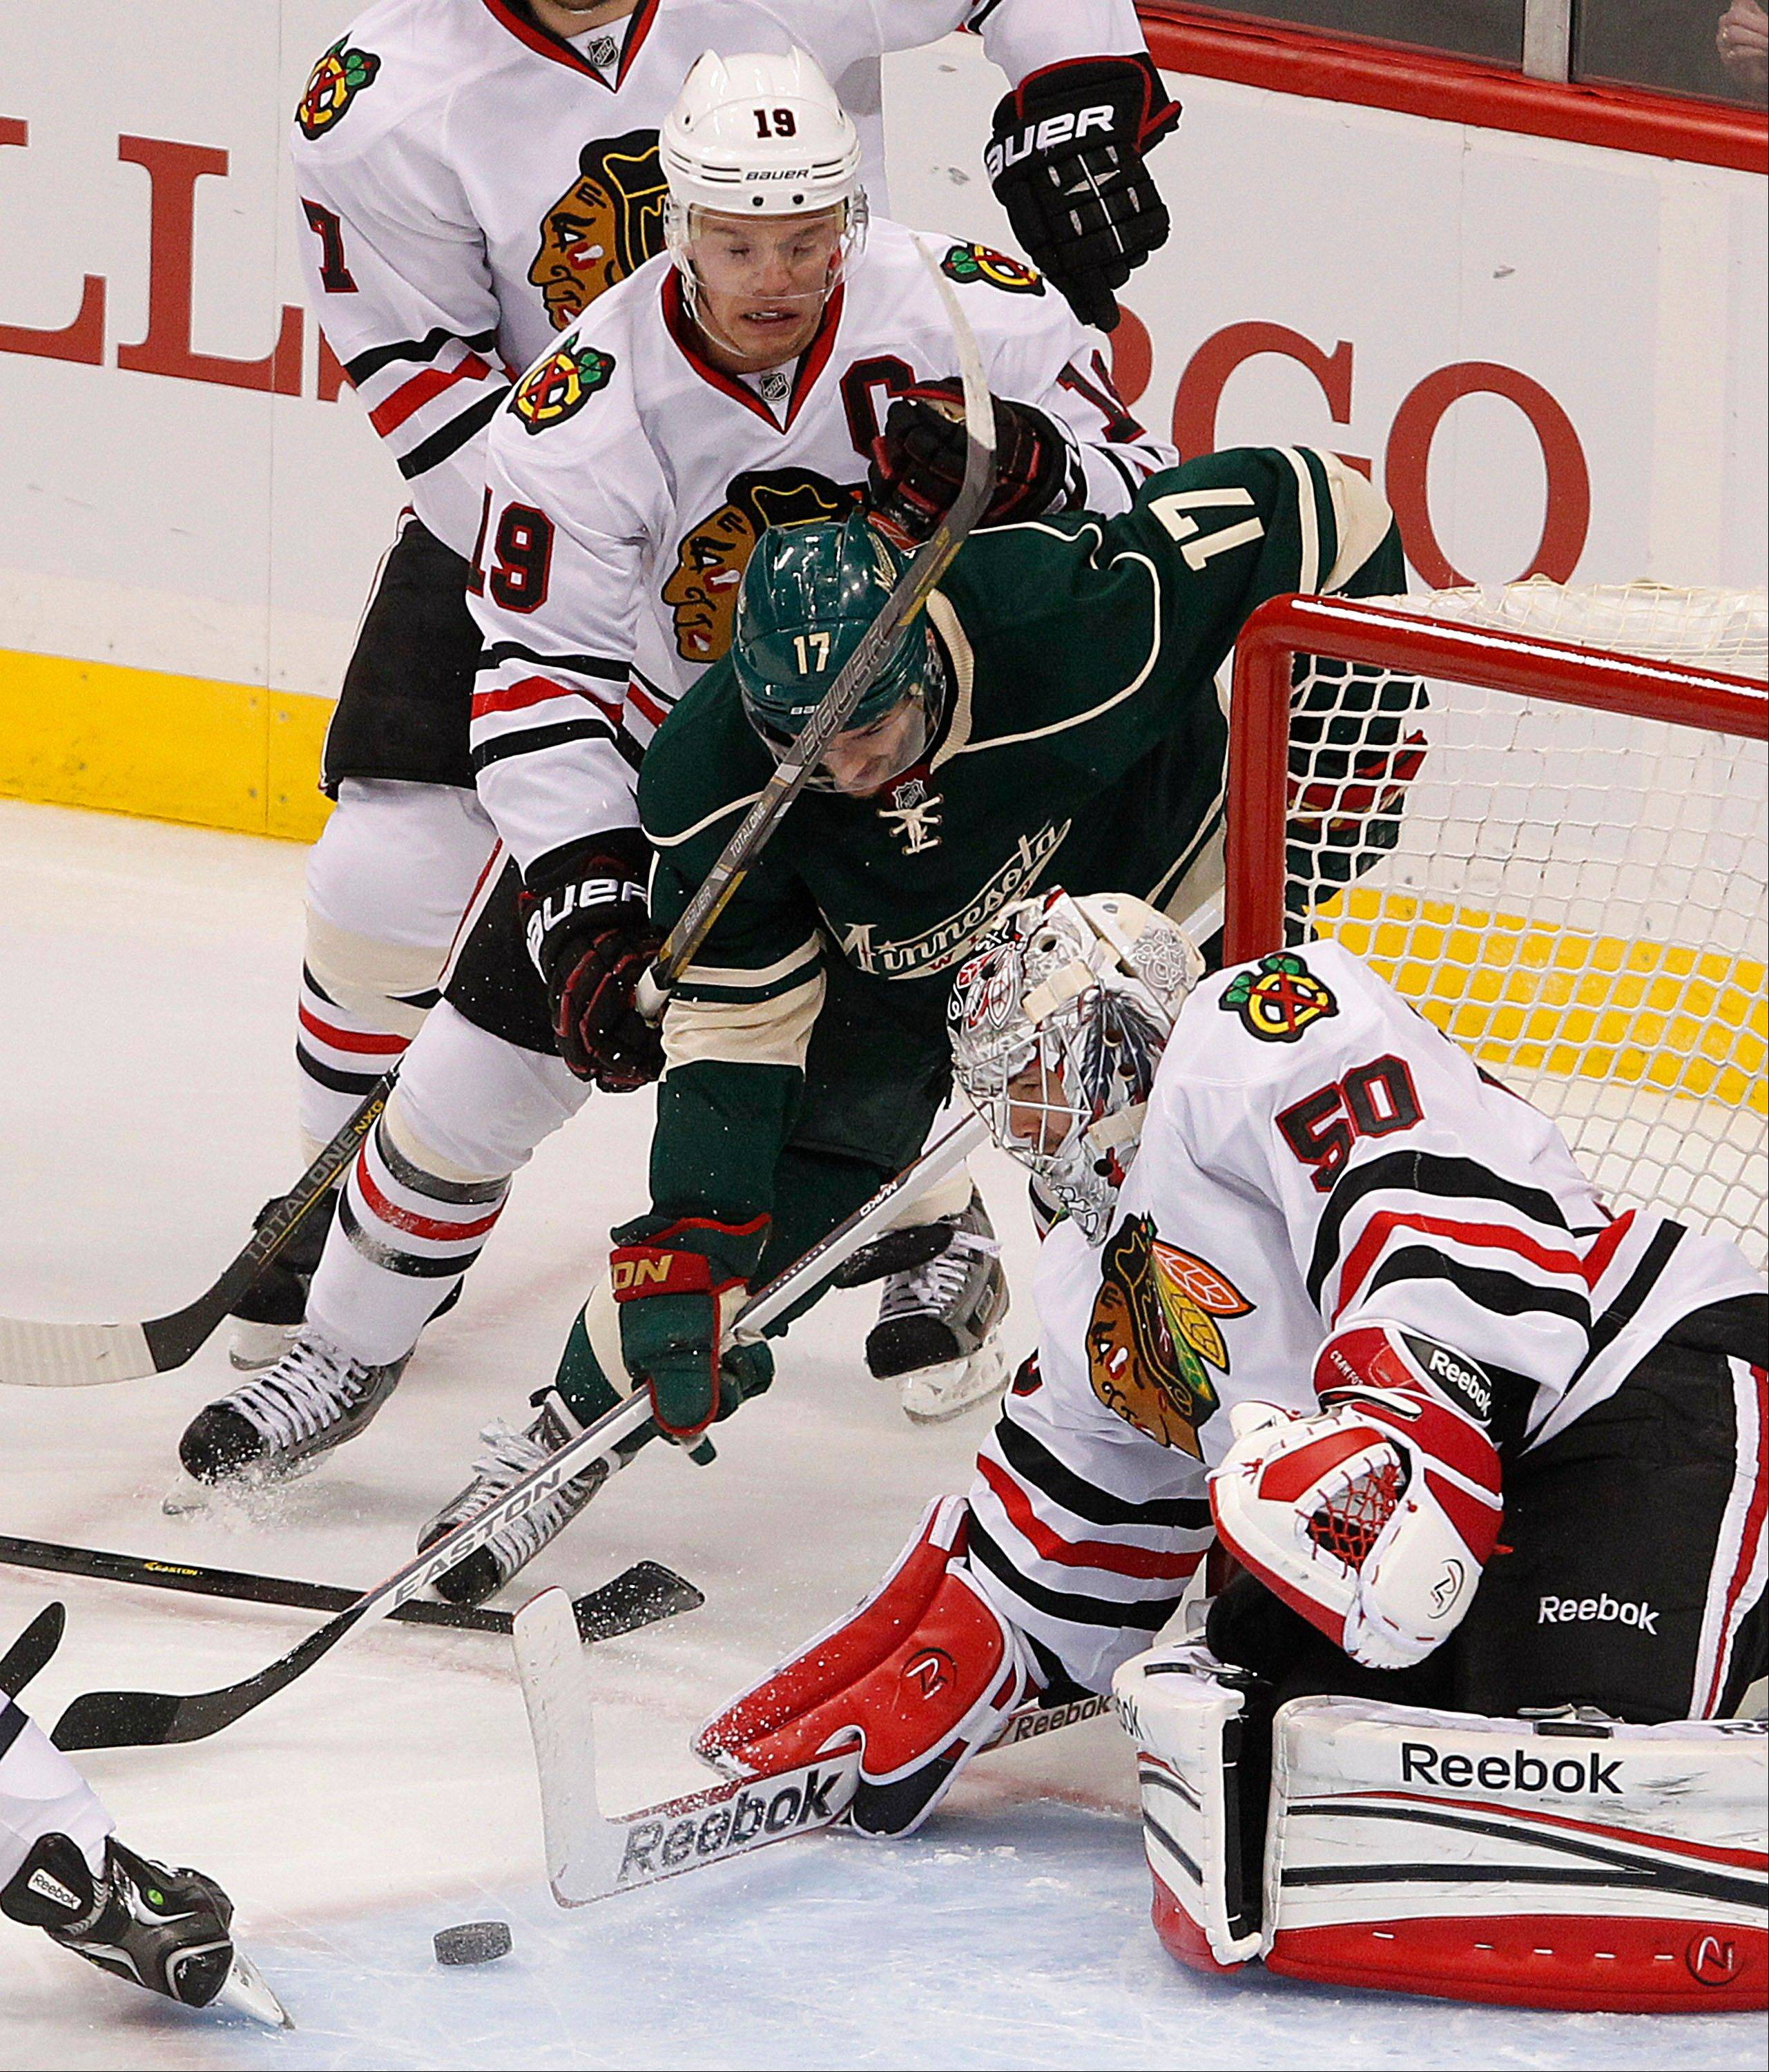 Blackhawks goalie Corey Crawford blocks a shot by the Minnesota Wild's Torrey Mitchell in the first period of Game 3 of a first-round NHL hockey Stanley Cup playoff series on Sunday, May 5, 2013, in St. Paul, Minn.